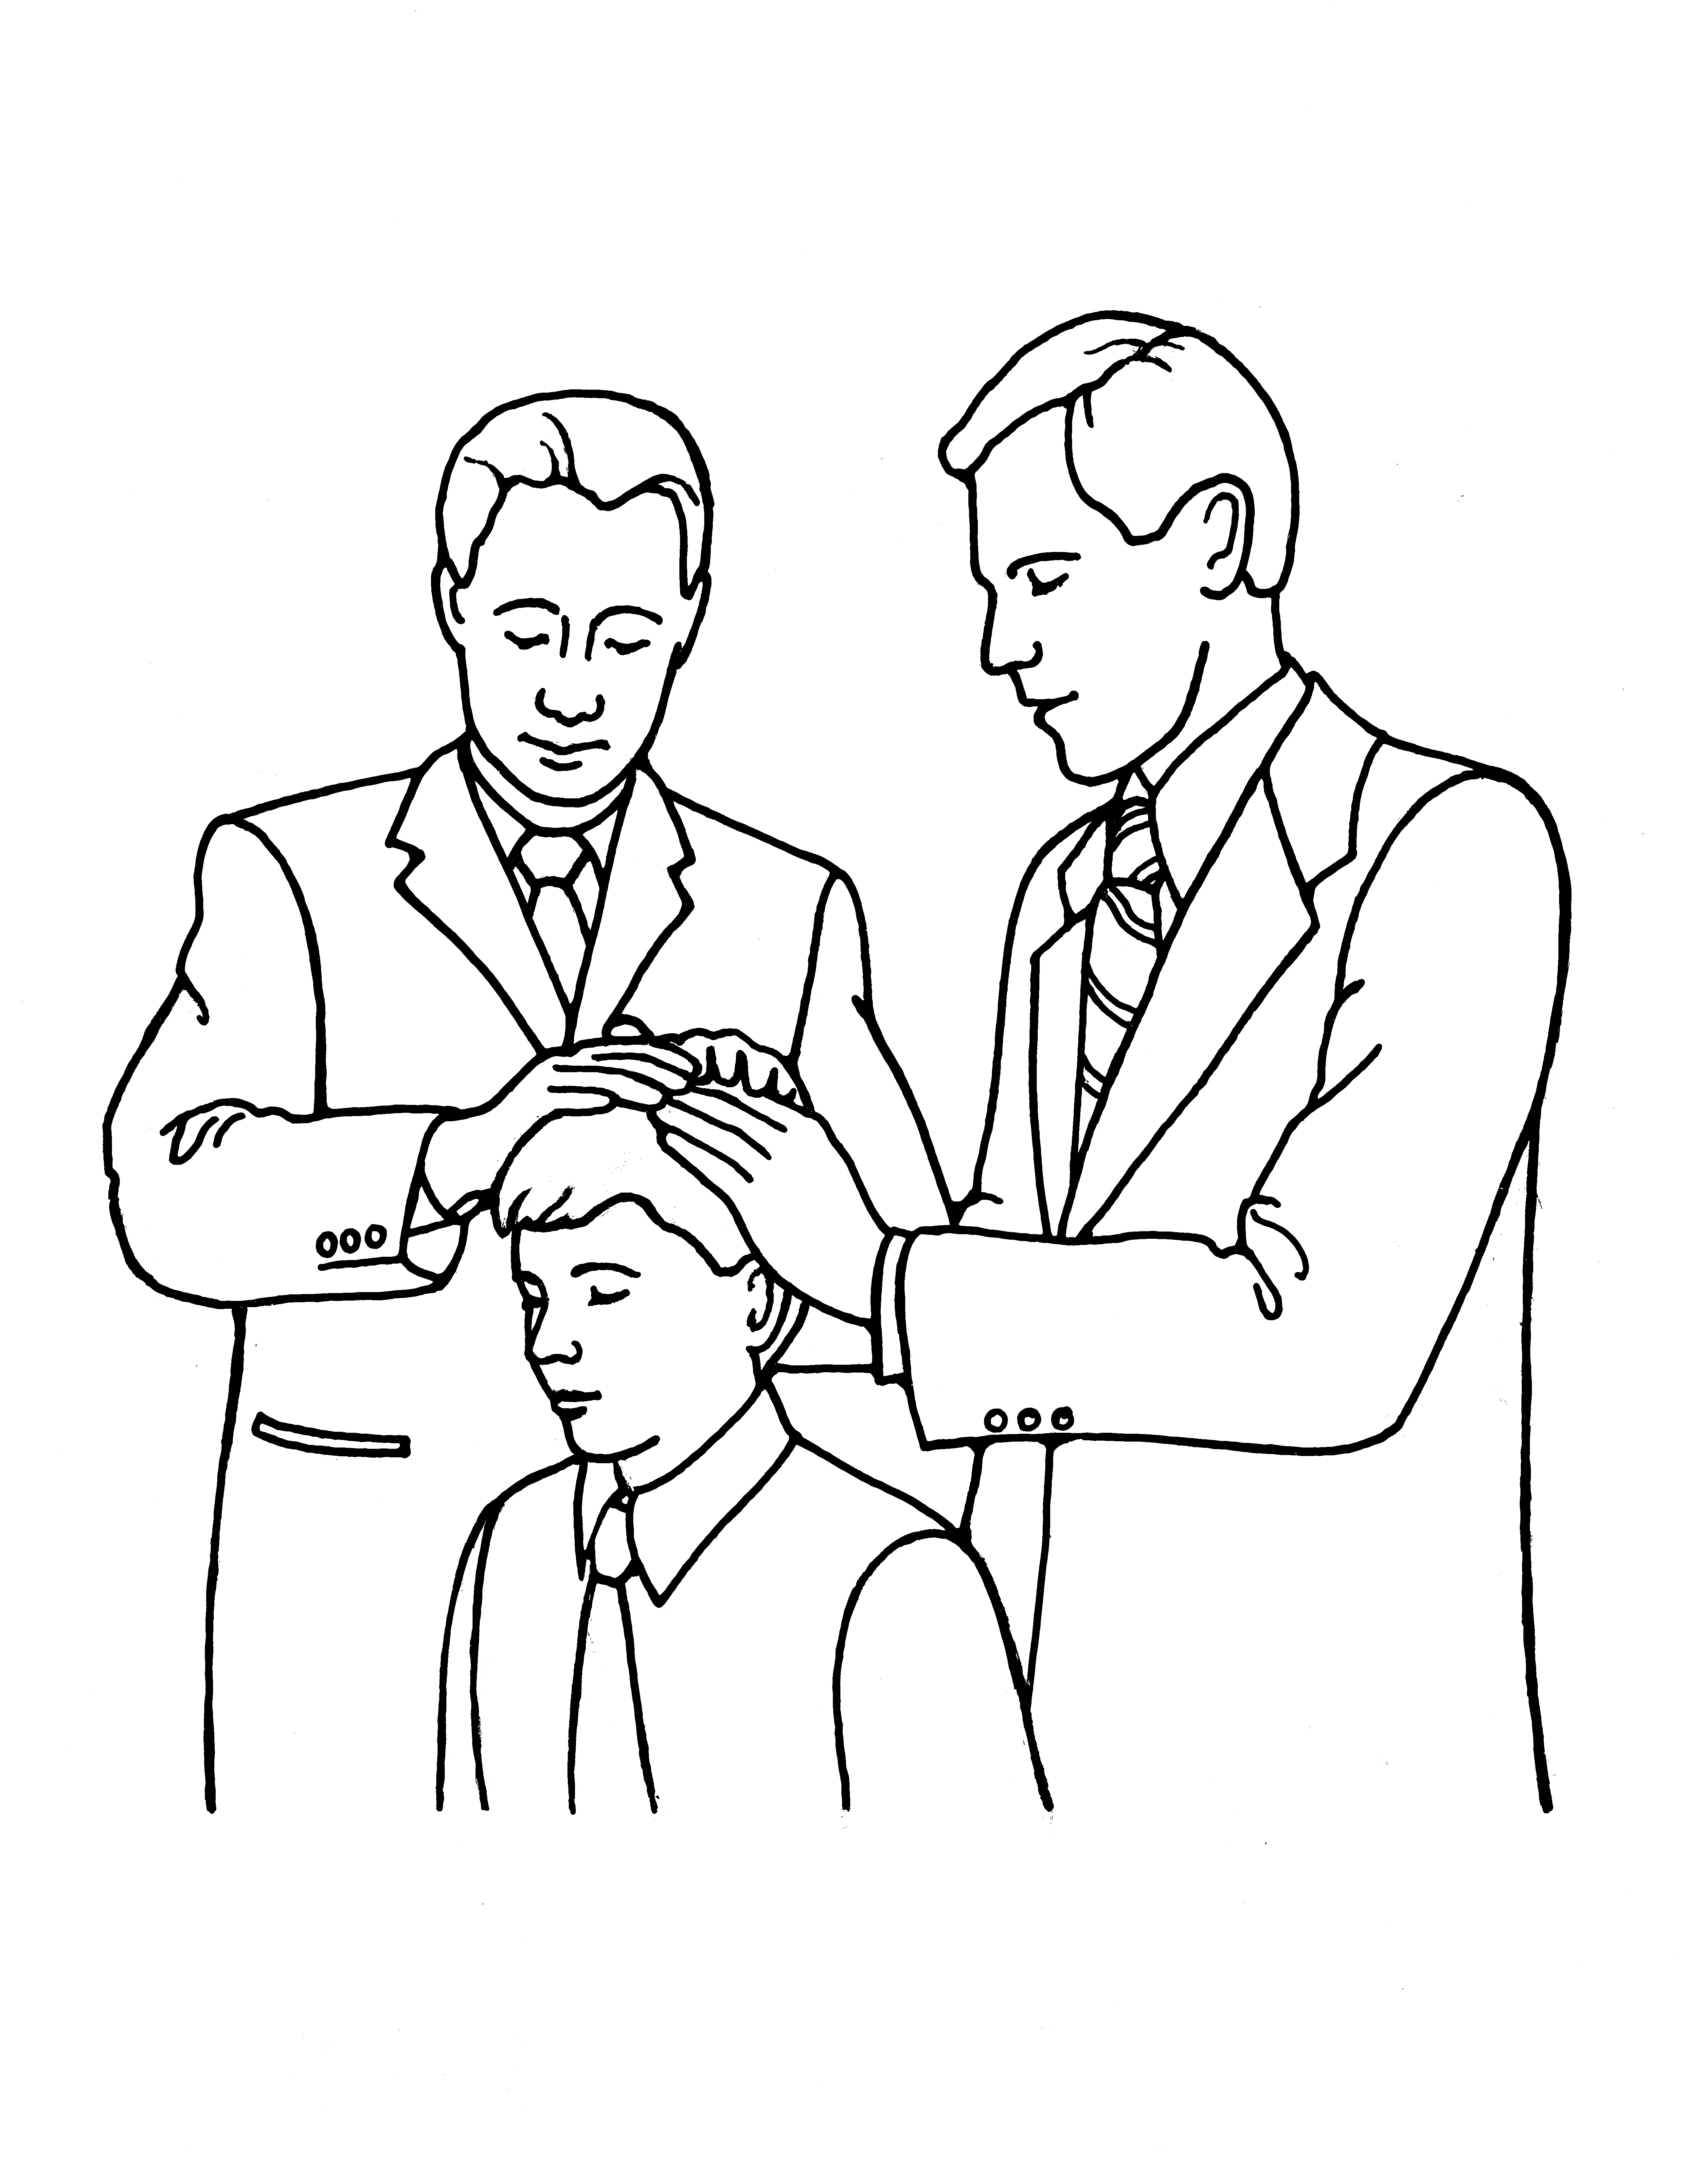 An illustration of a young man receiving the Melchizedek Priesthood.